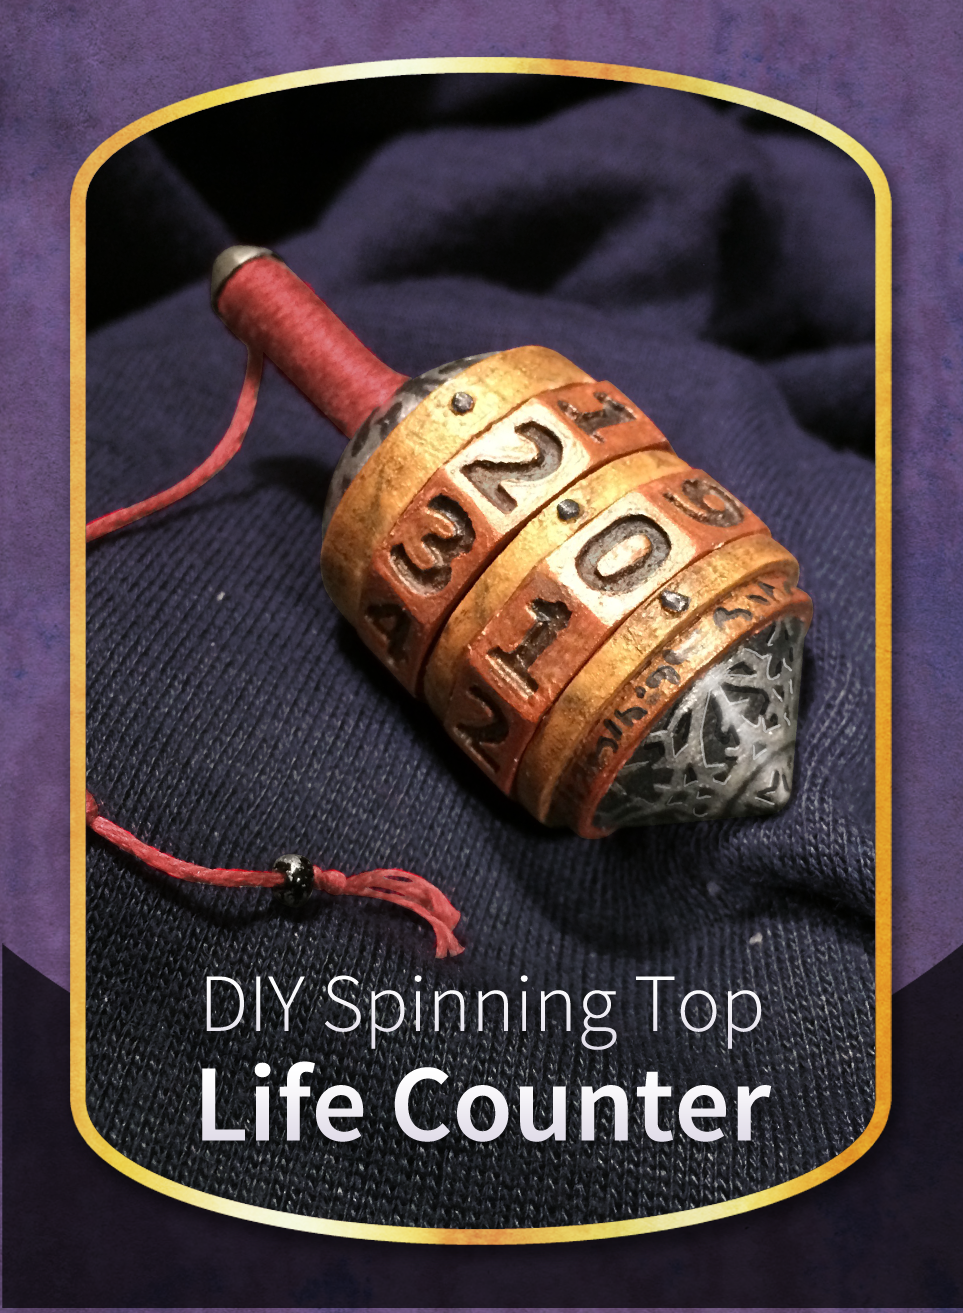 Announcing: the DIY Spinning Top Life Counter for #mtg #cmjdiy http://cardamajigs.com/products/diytop